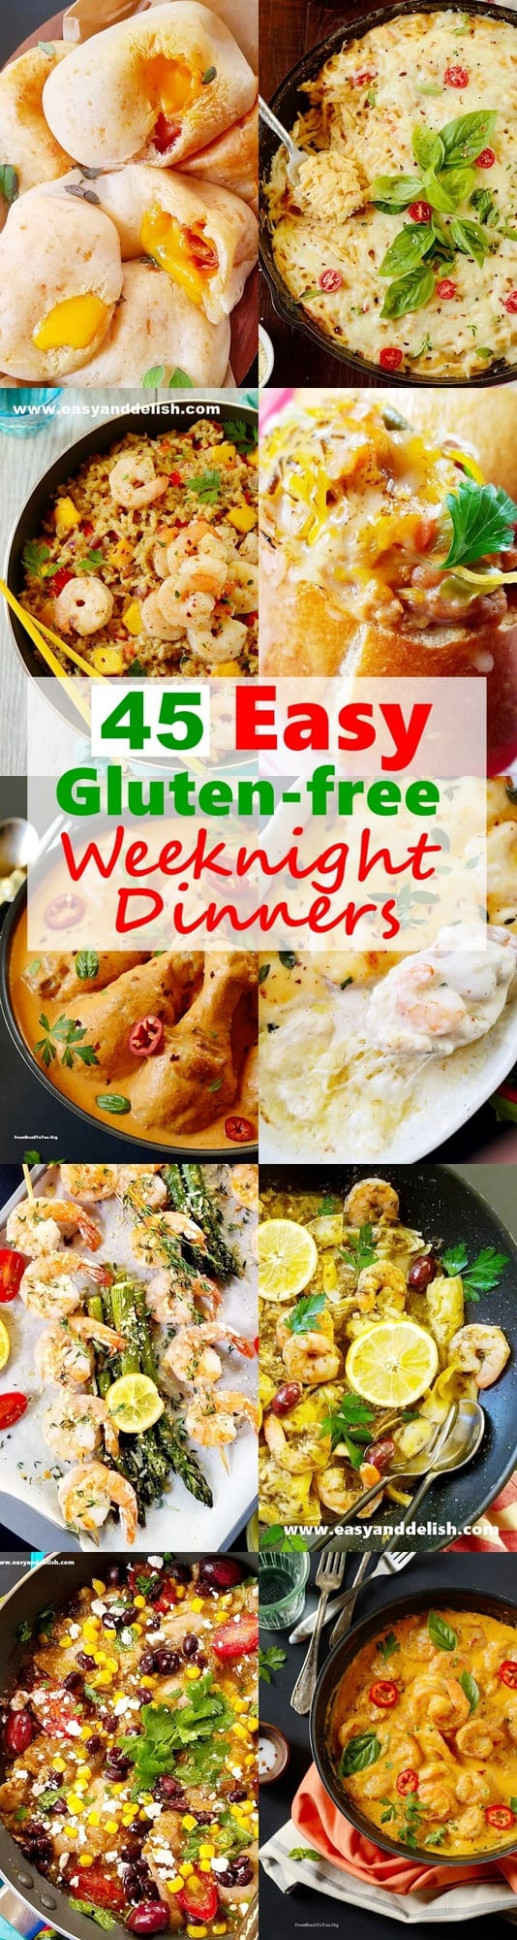 10 Easy Gluten-Free Weeknight Dinners for the Family - Easy ..